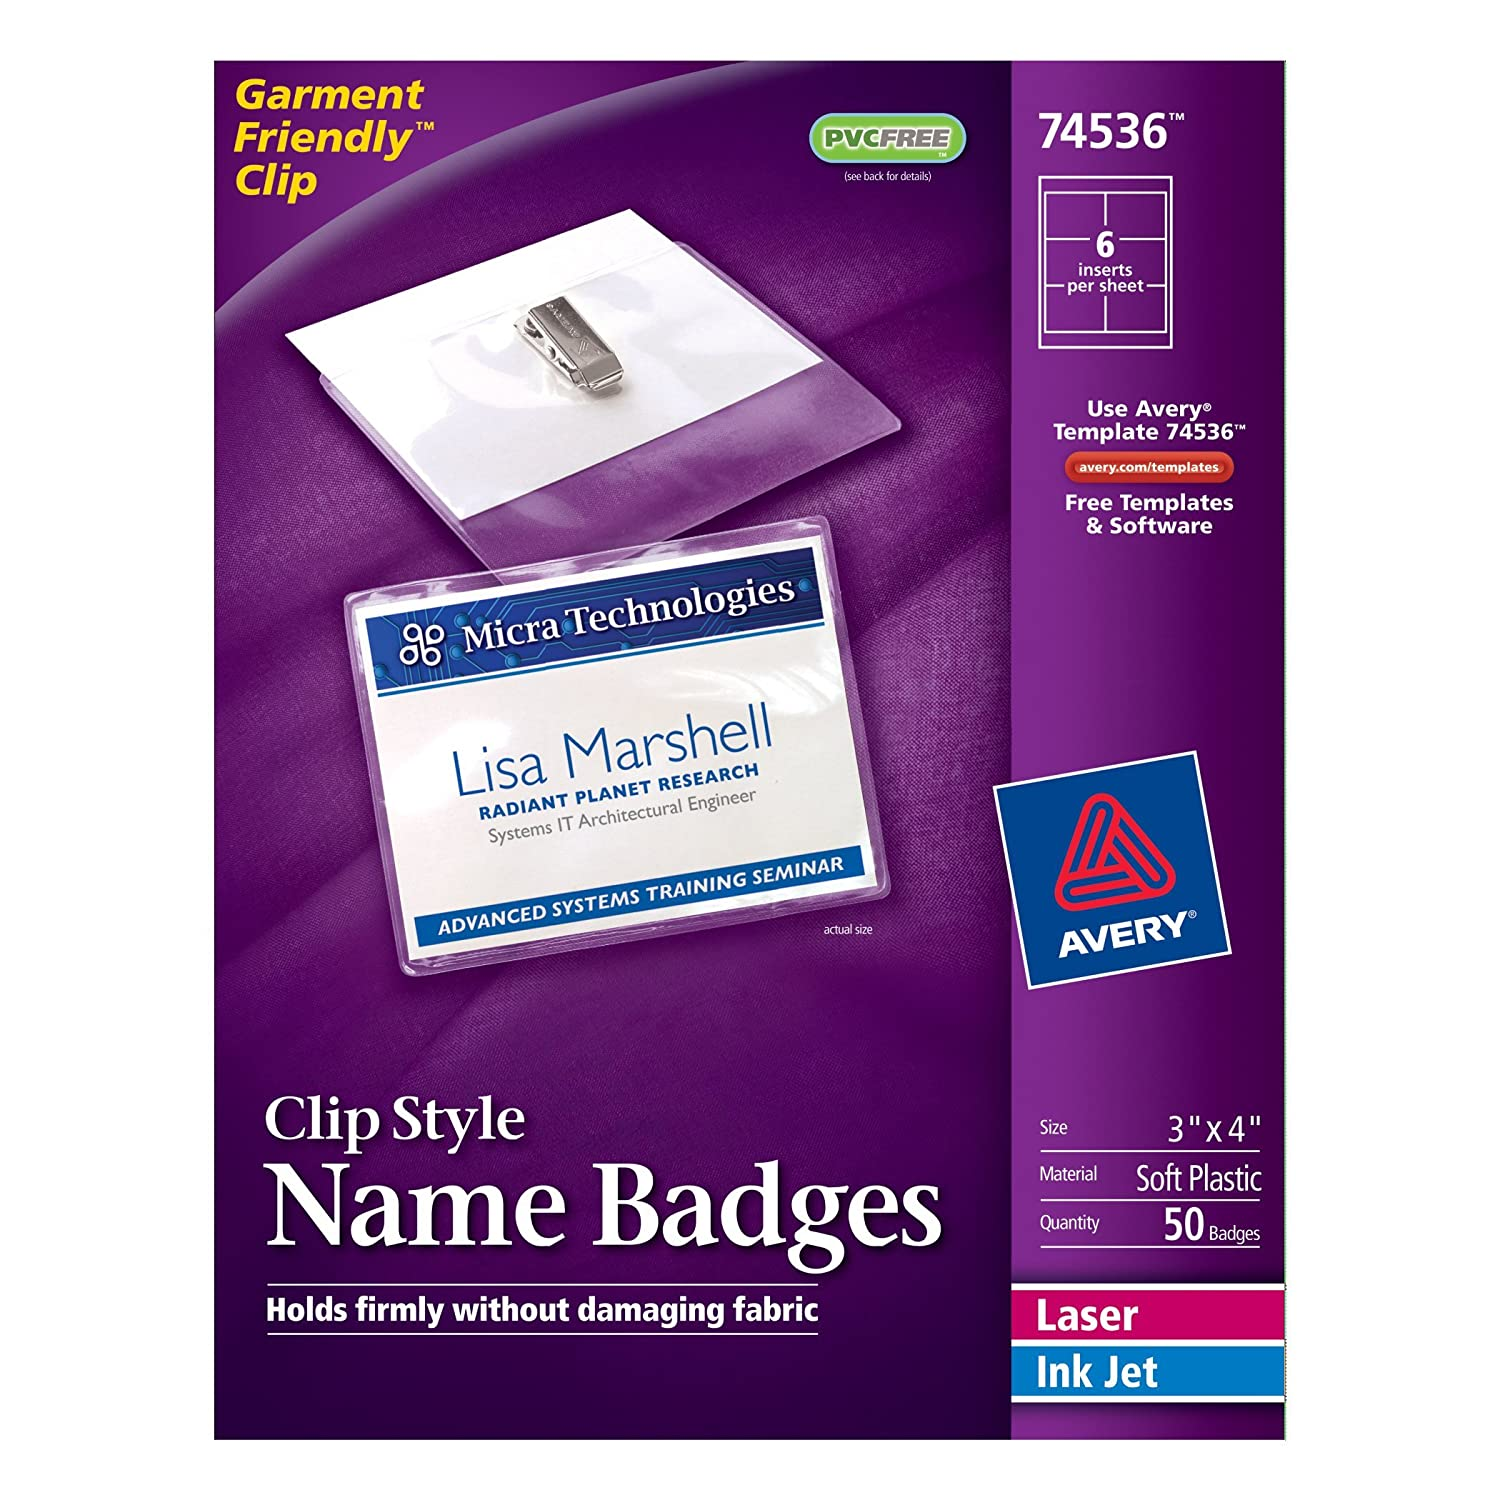 Amazon avery top loading garment friendly clip style name amazon avery top loading garment friendly clip style name badges 3 x 4 box of 50 74536 badge holders office products pronofoot35fo Gallery